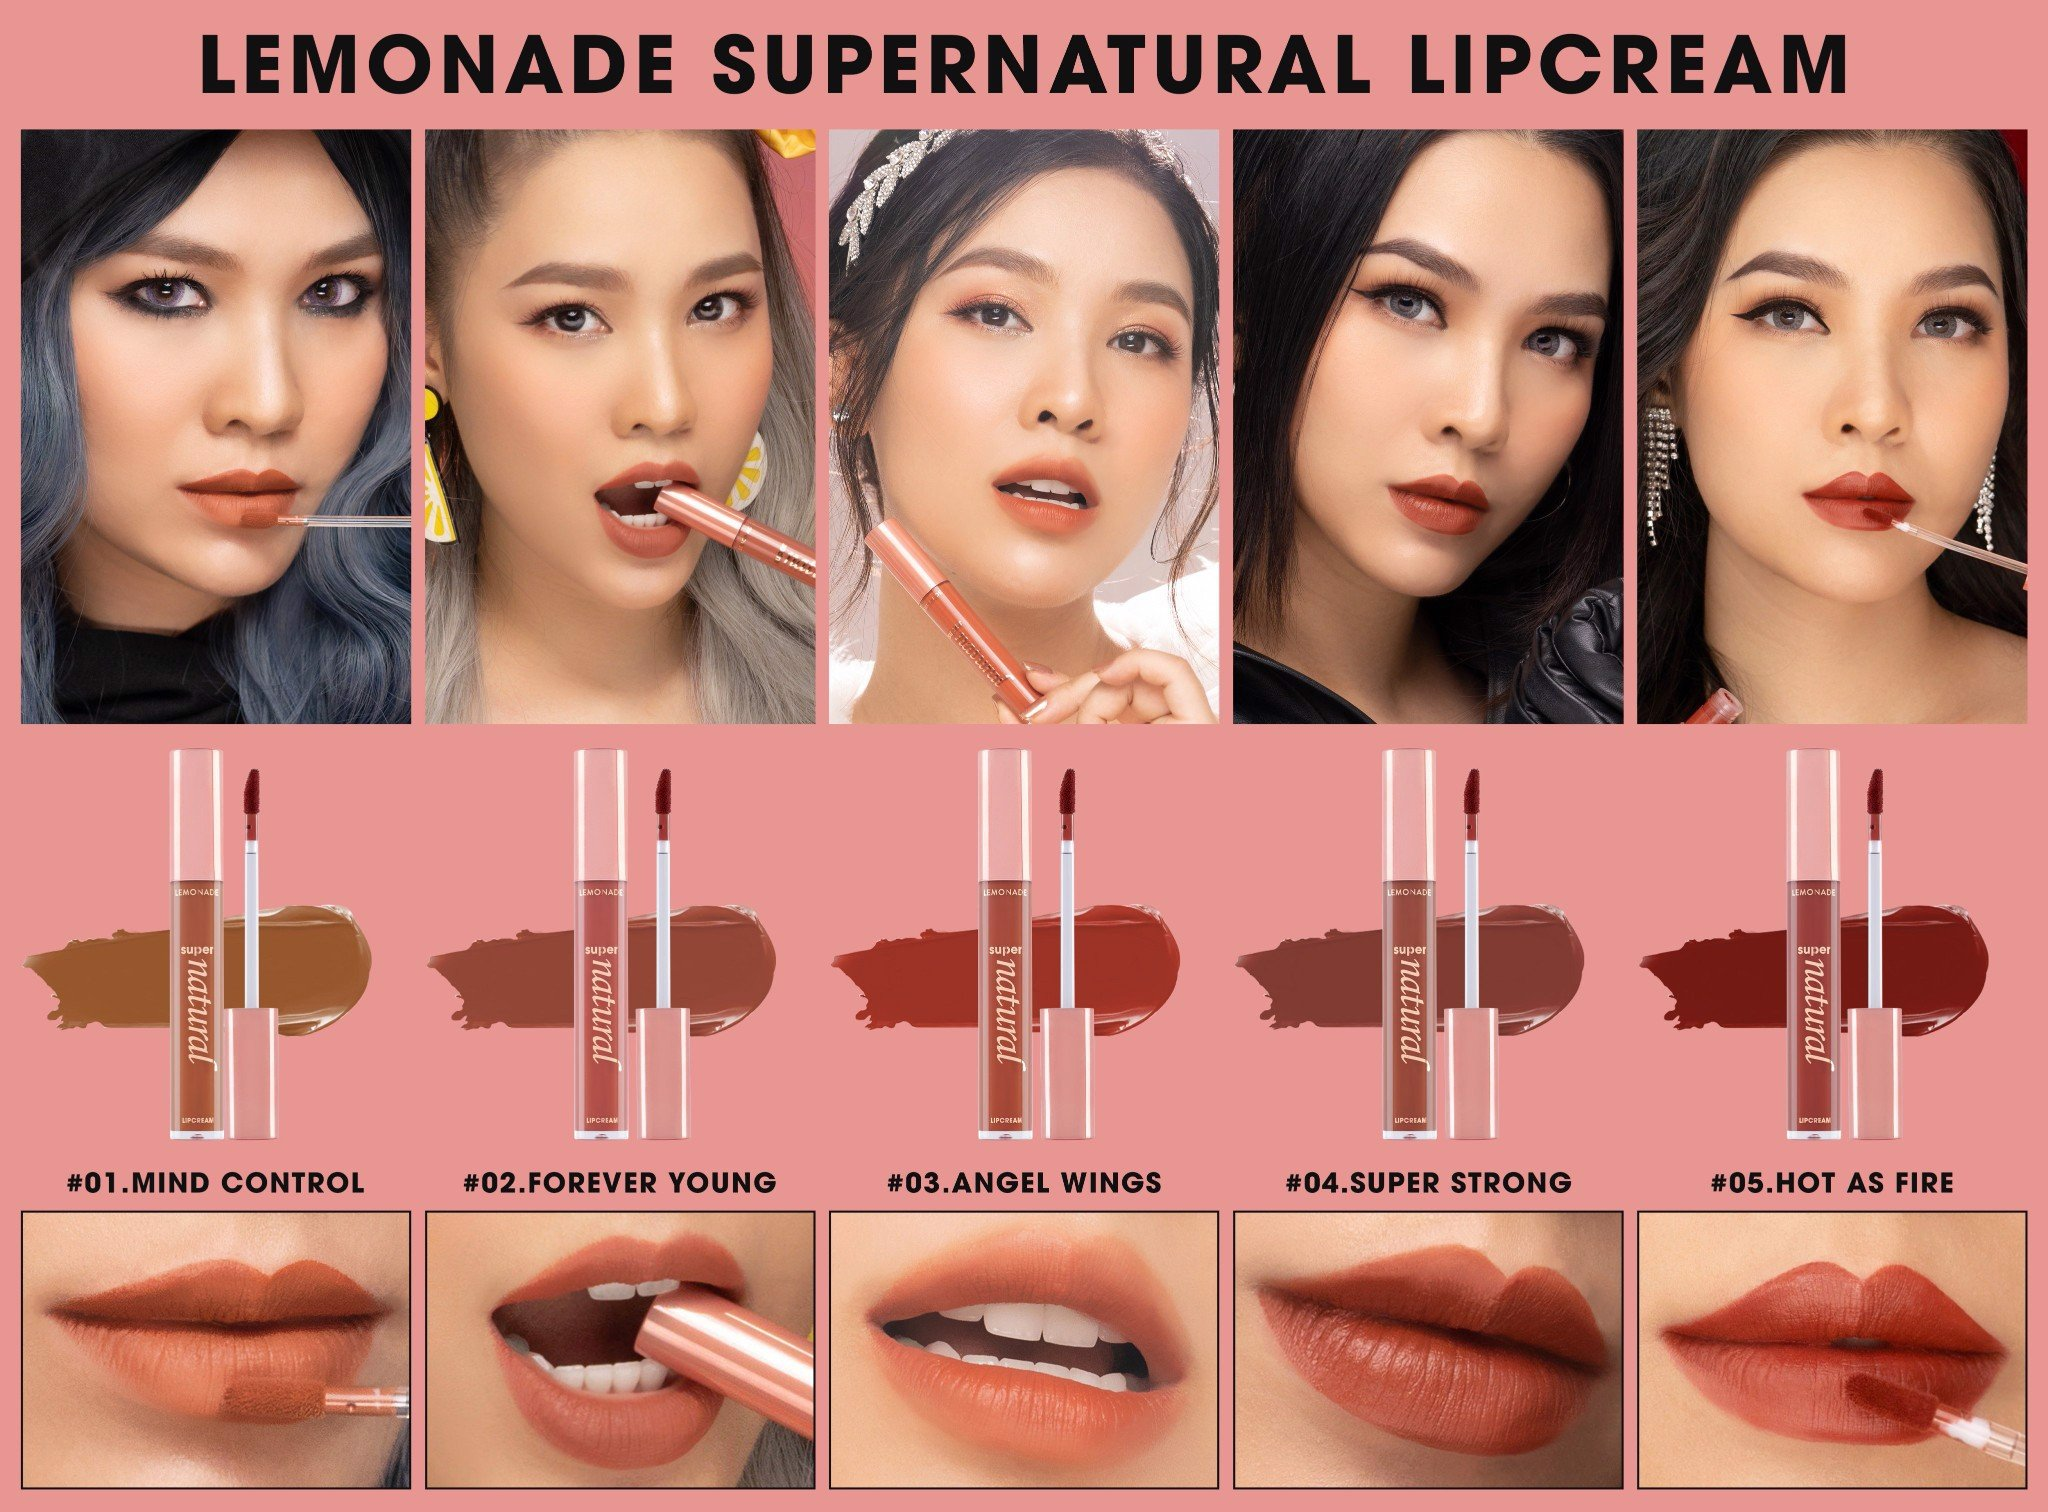 03. ANGEL WINGS Đỏ cam nâu - SUPERNATURAL MATTE LIPCREAM